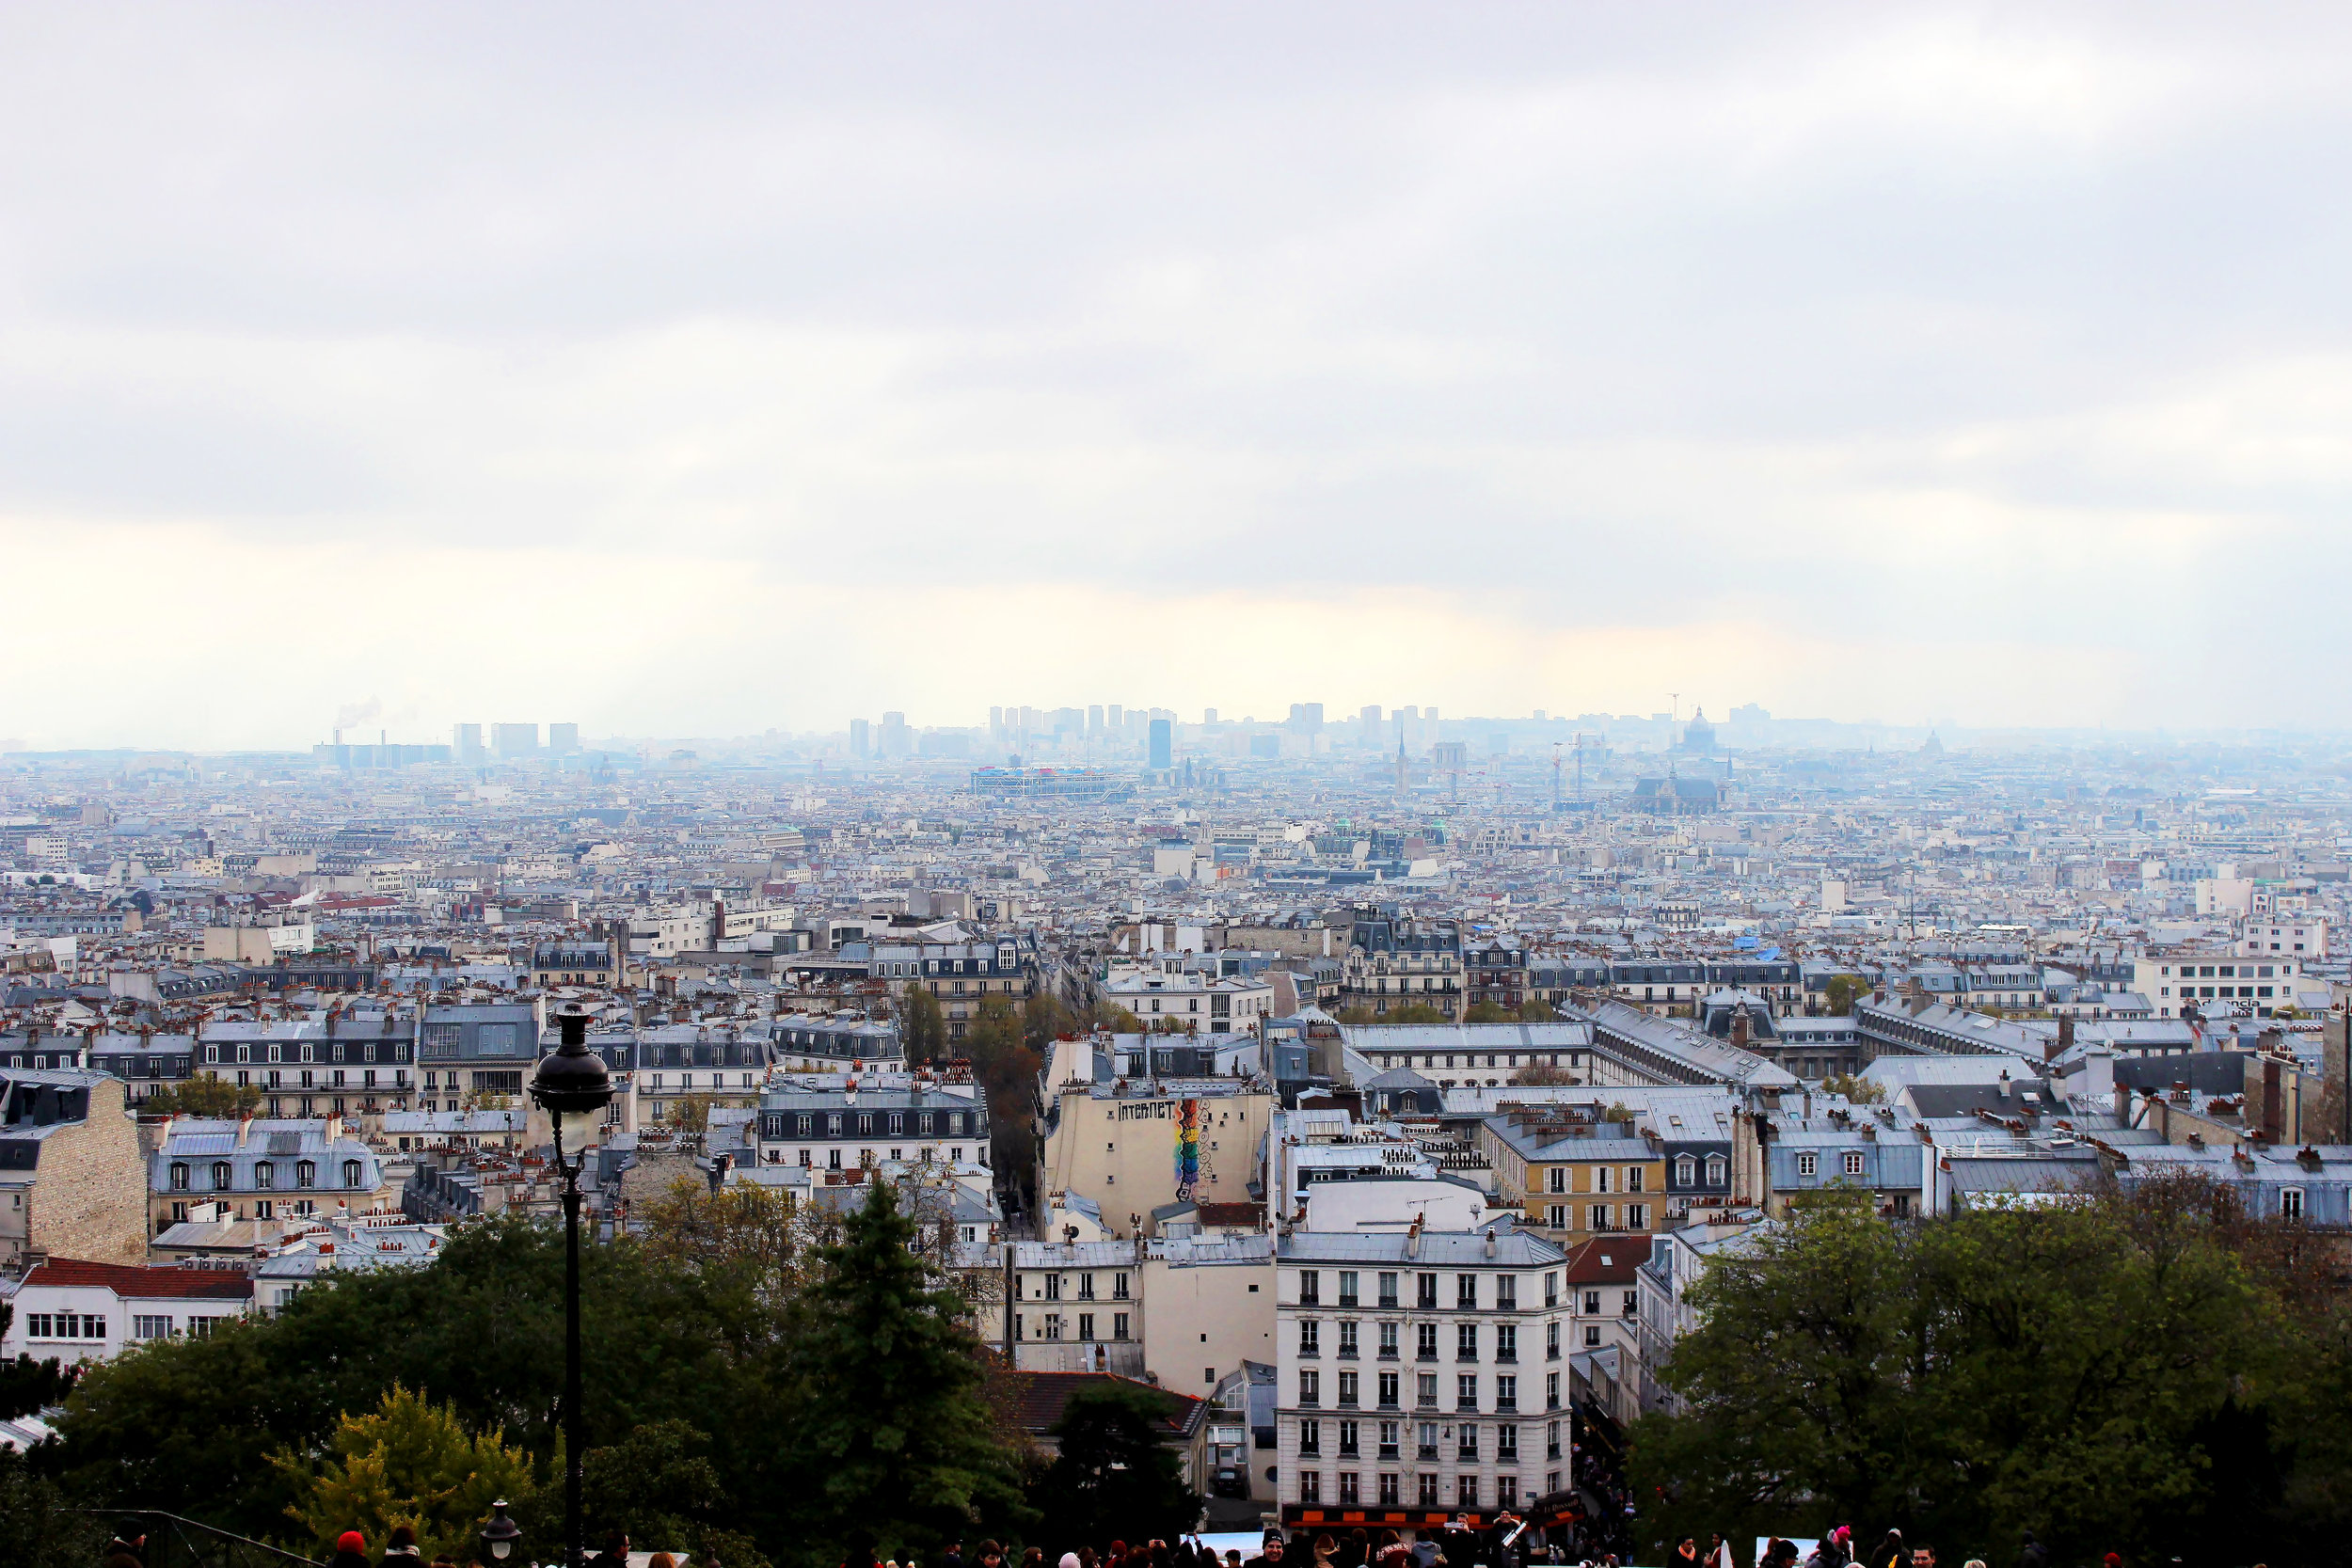 View from Sacre-Coeur in Montmartre